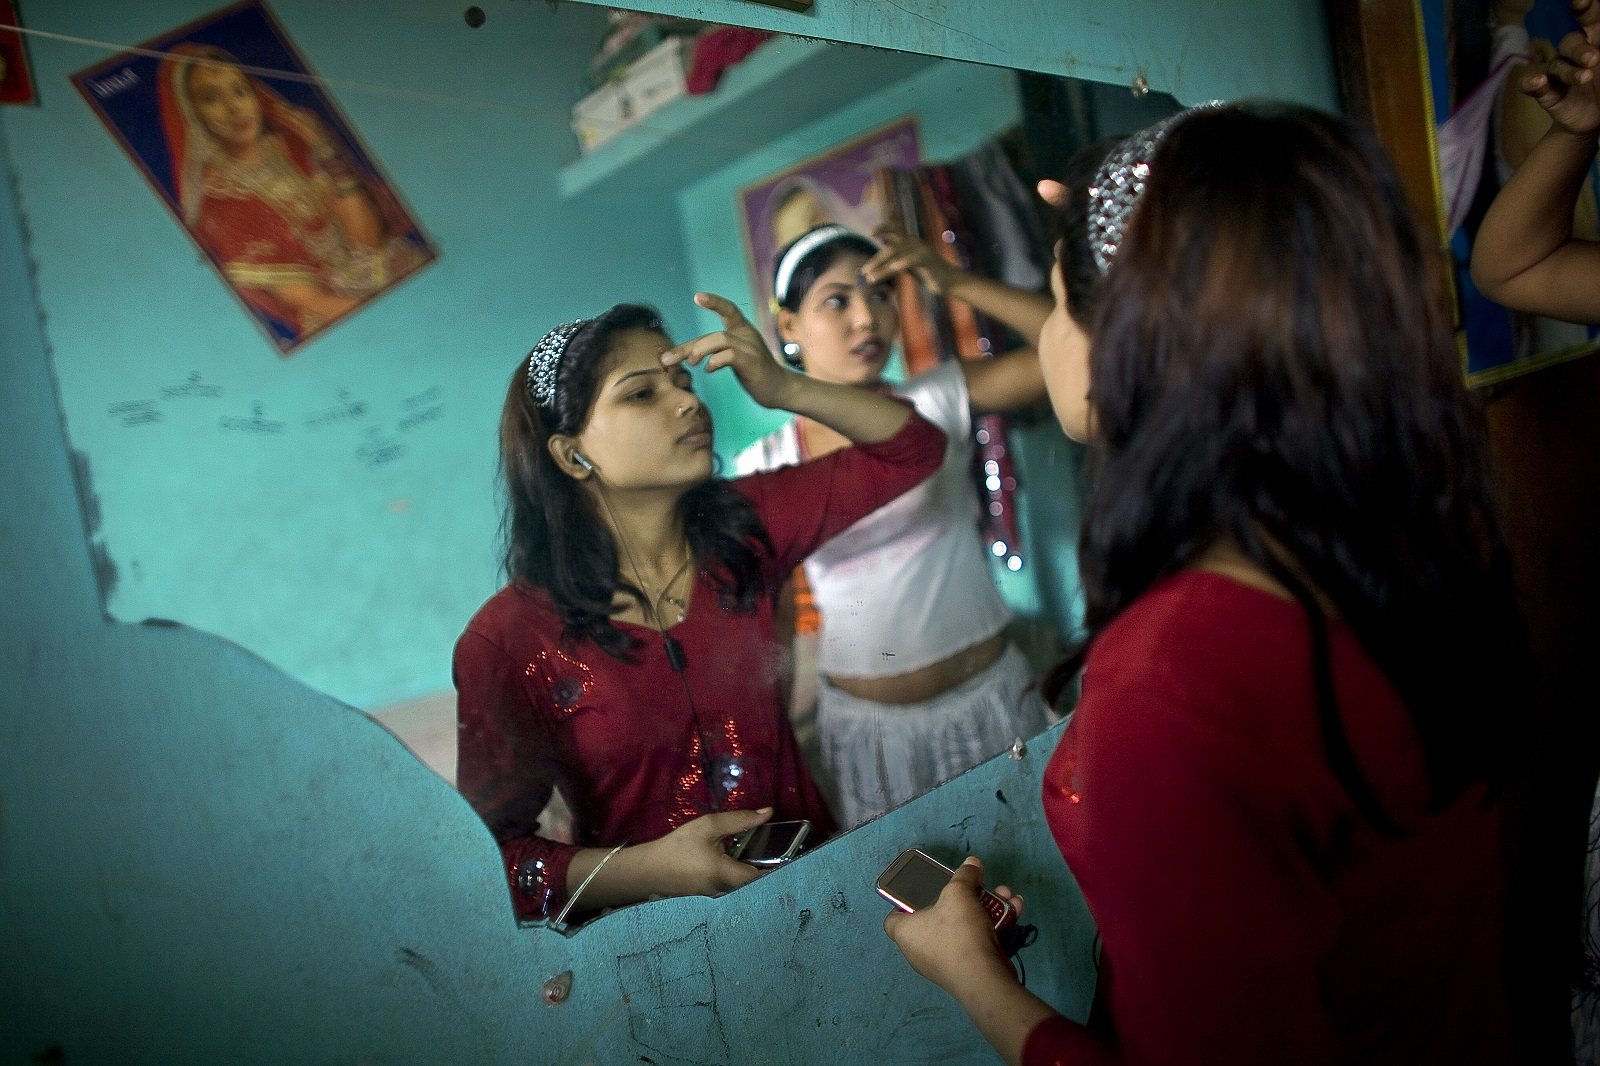 sex workers in bangladesh Know about bangladesh's largest brothel village where sex workers live in  appears to be like any other poor and down-trodden area of bangladesh.